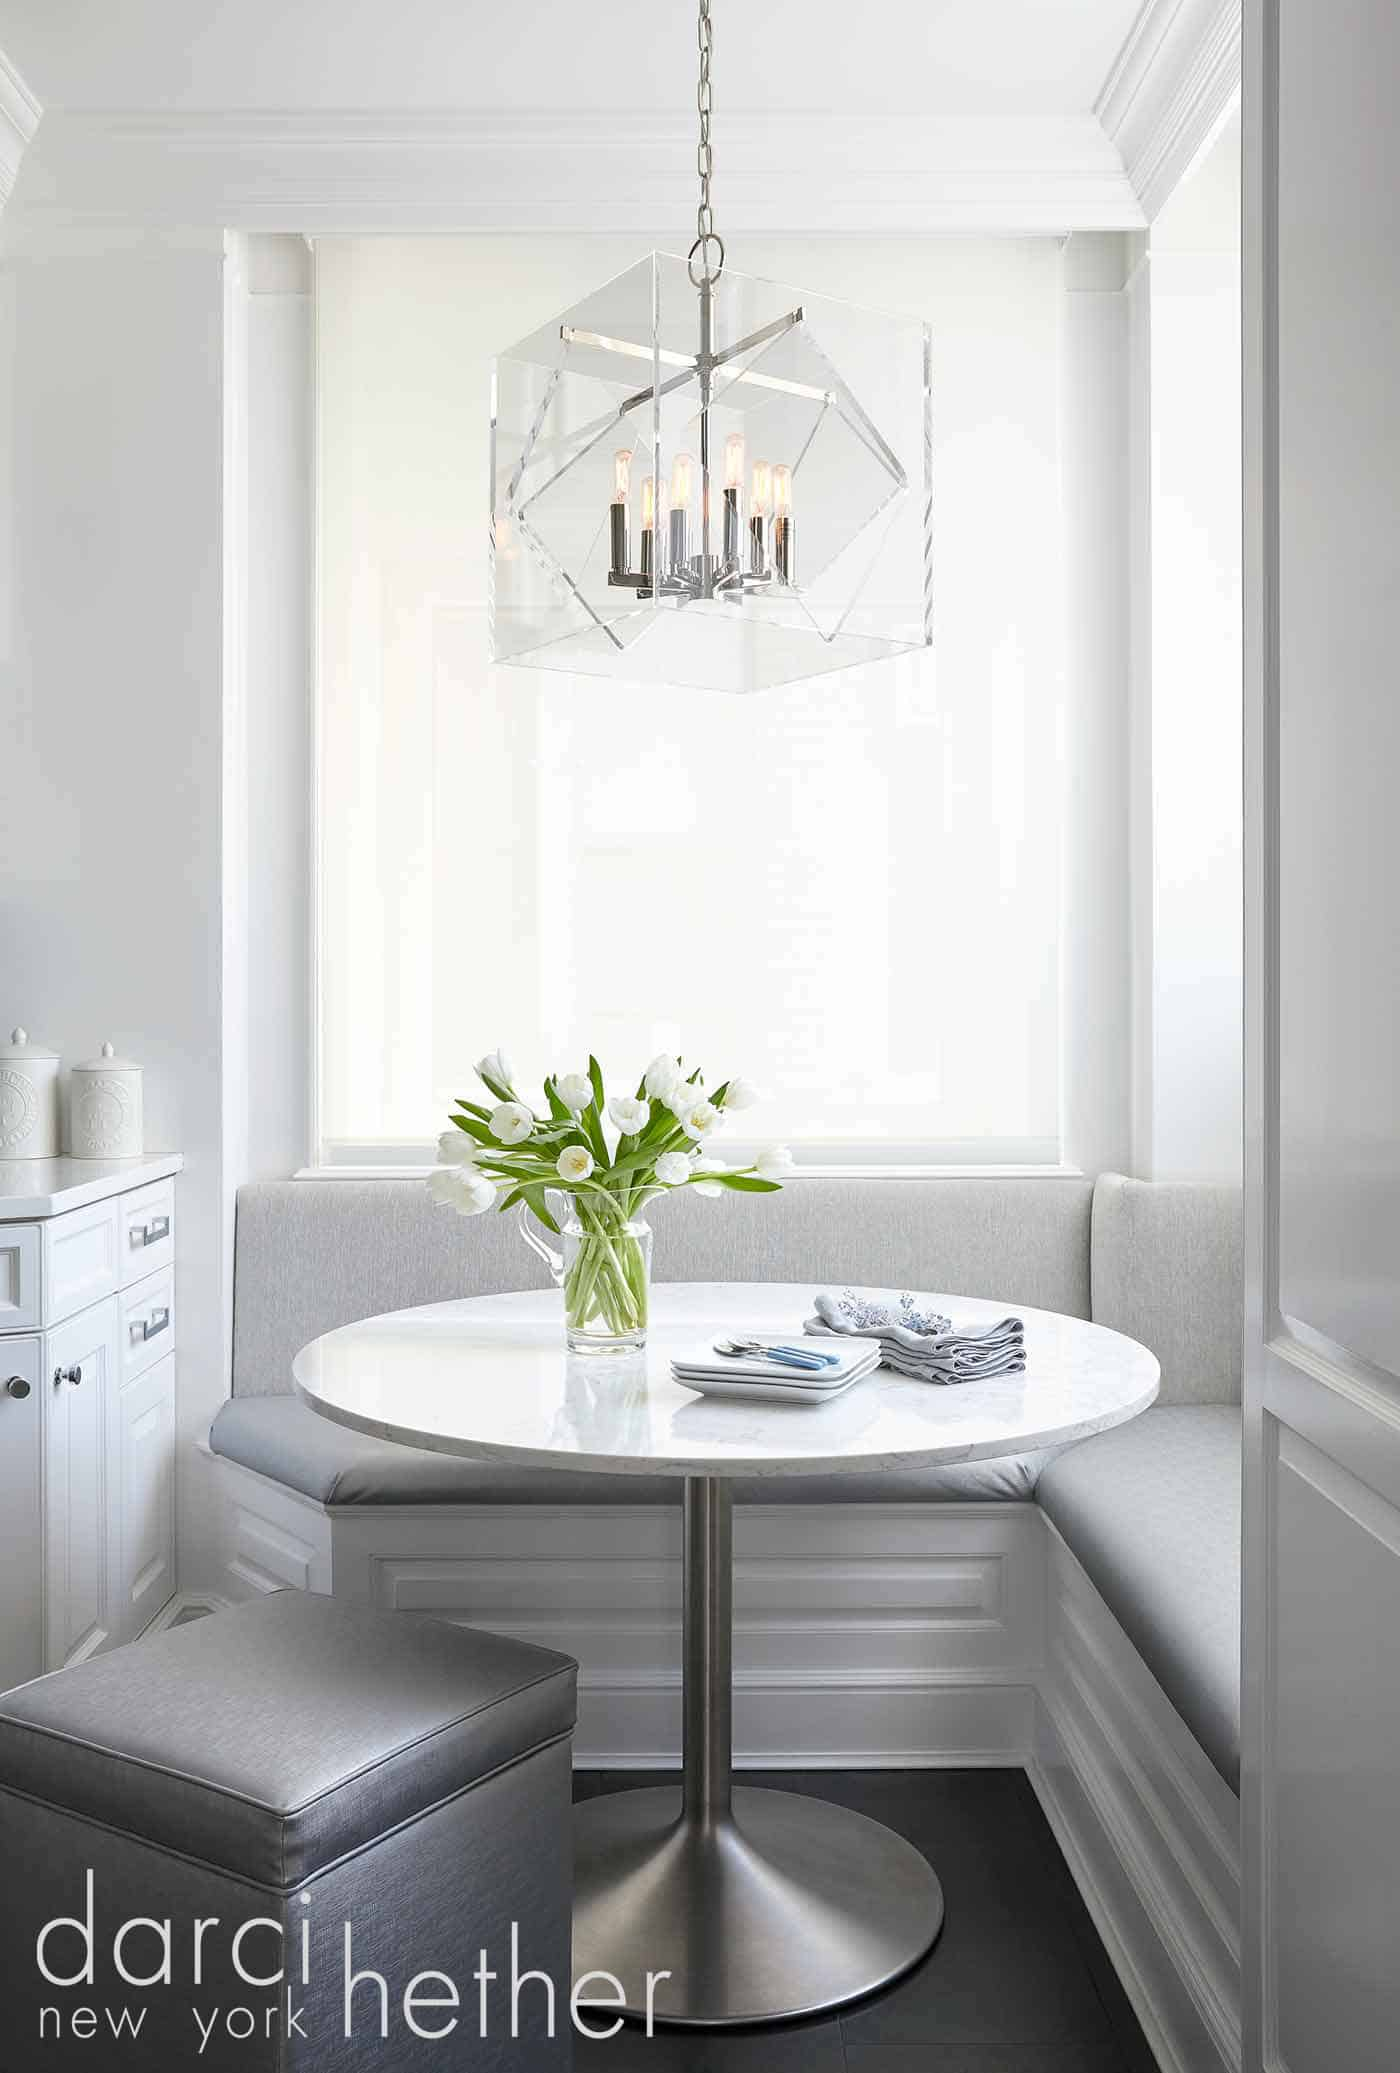 chic 5th avenue apartment with views of central park. the acrylic pendant lighting and silver metallic accents create an elevated dining experience.